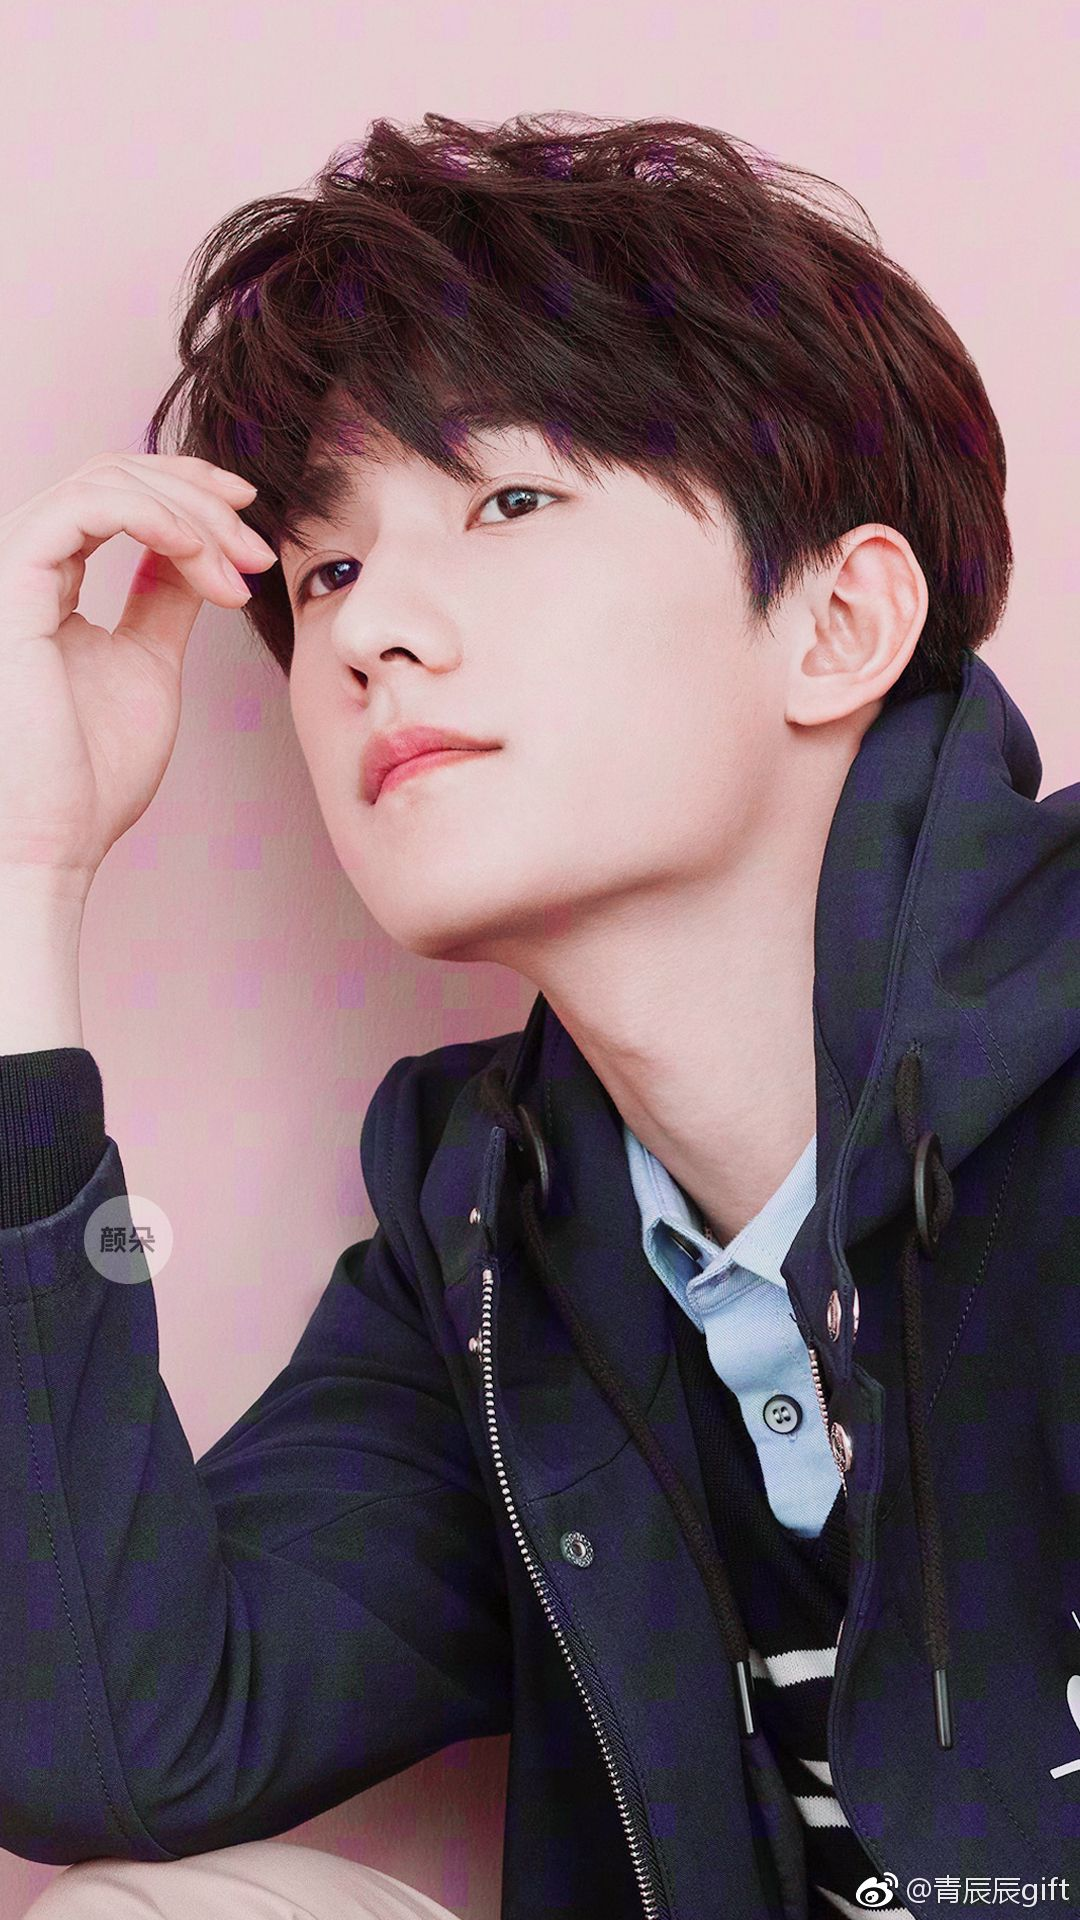 Although yang yang has not officially announced his girlfriend, he has lots of rumored girlfriends since his debut. Pin by Heather Huish on 杨洋 YangYang   Yang yang actor ...